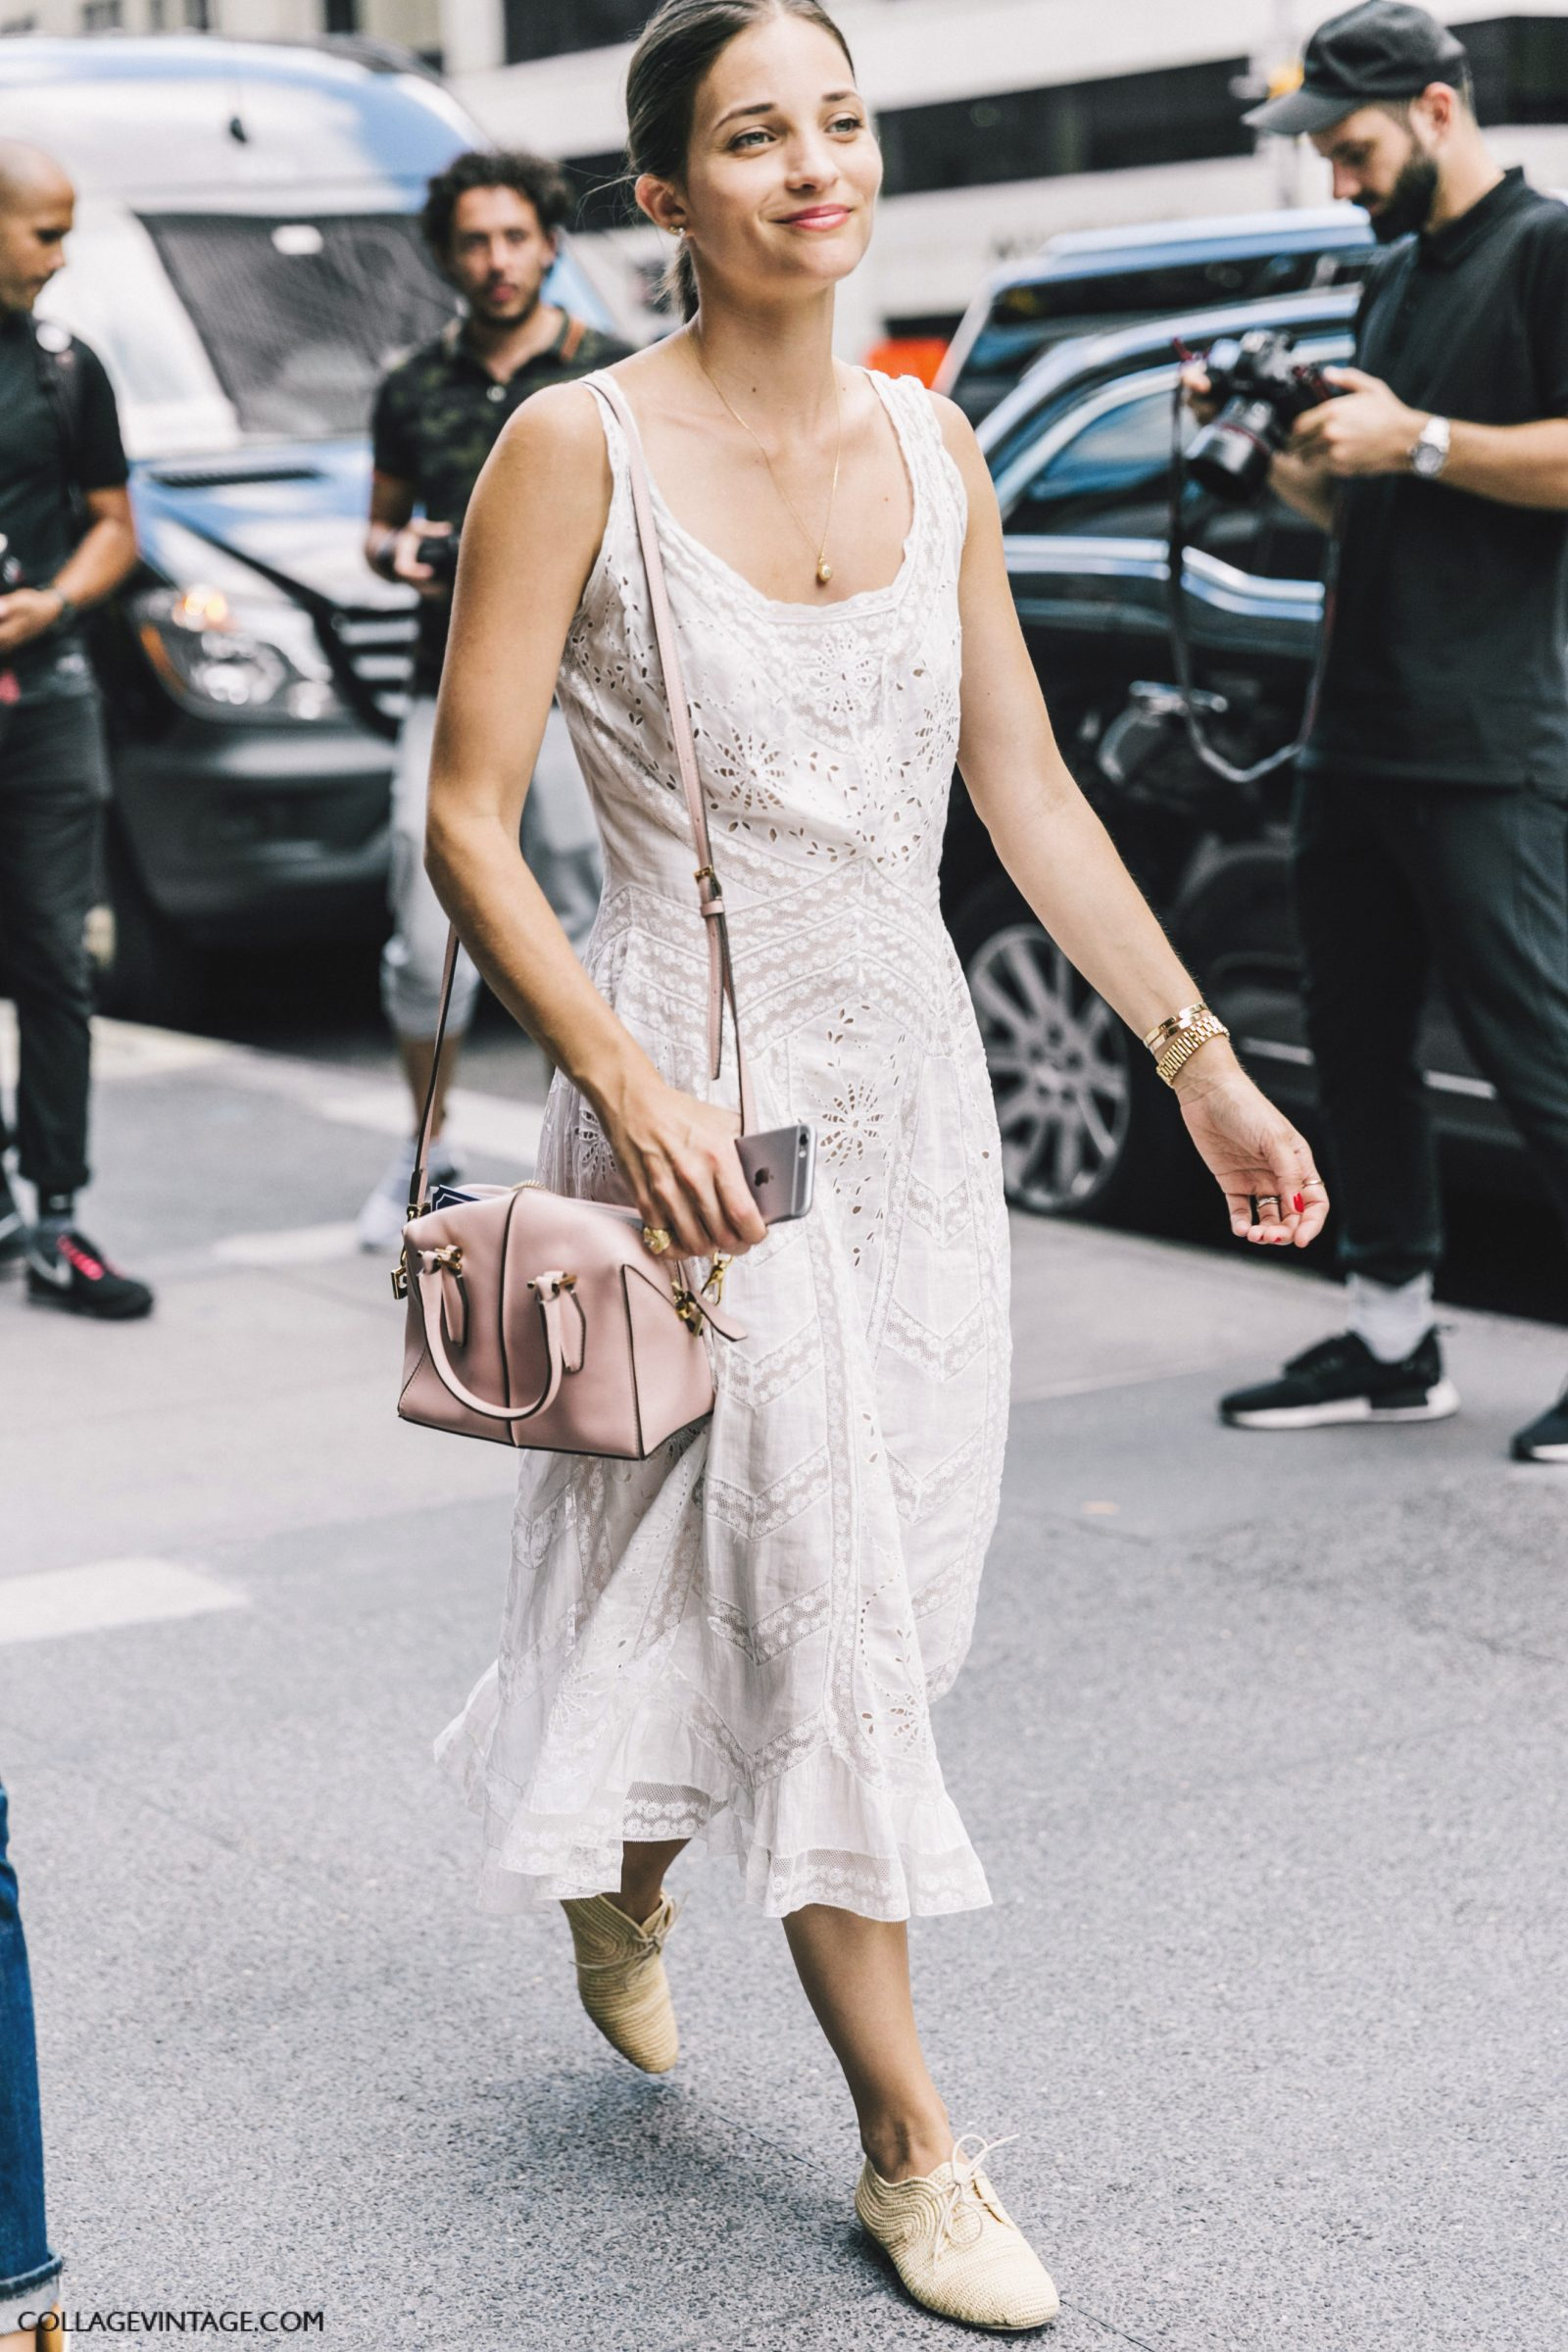 nyfw-new_york_fashion_week_ss17-street_style-outfits-collage_vintage-maria_duenas_jacobs-2